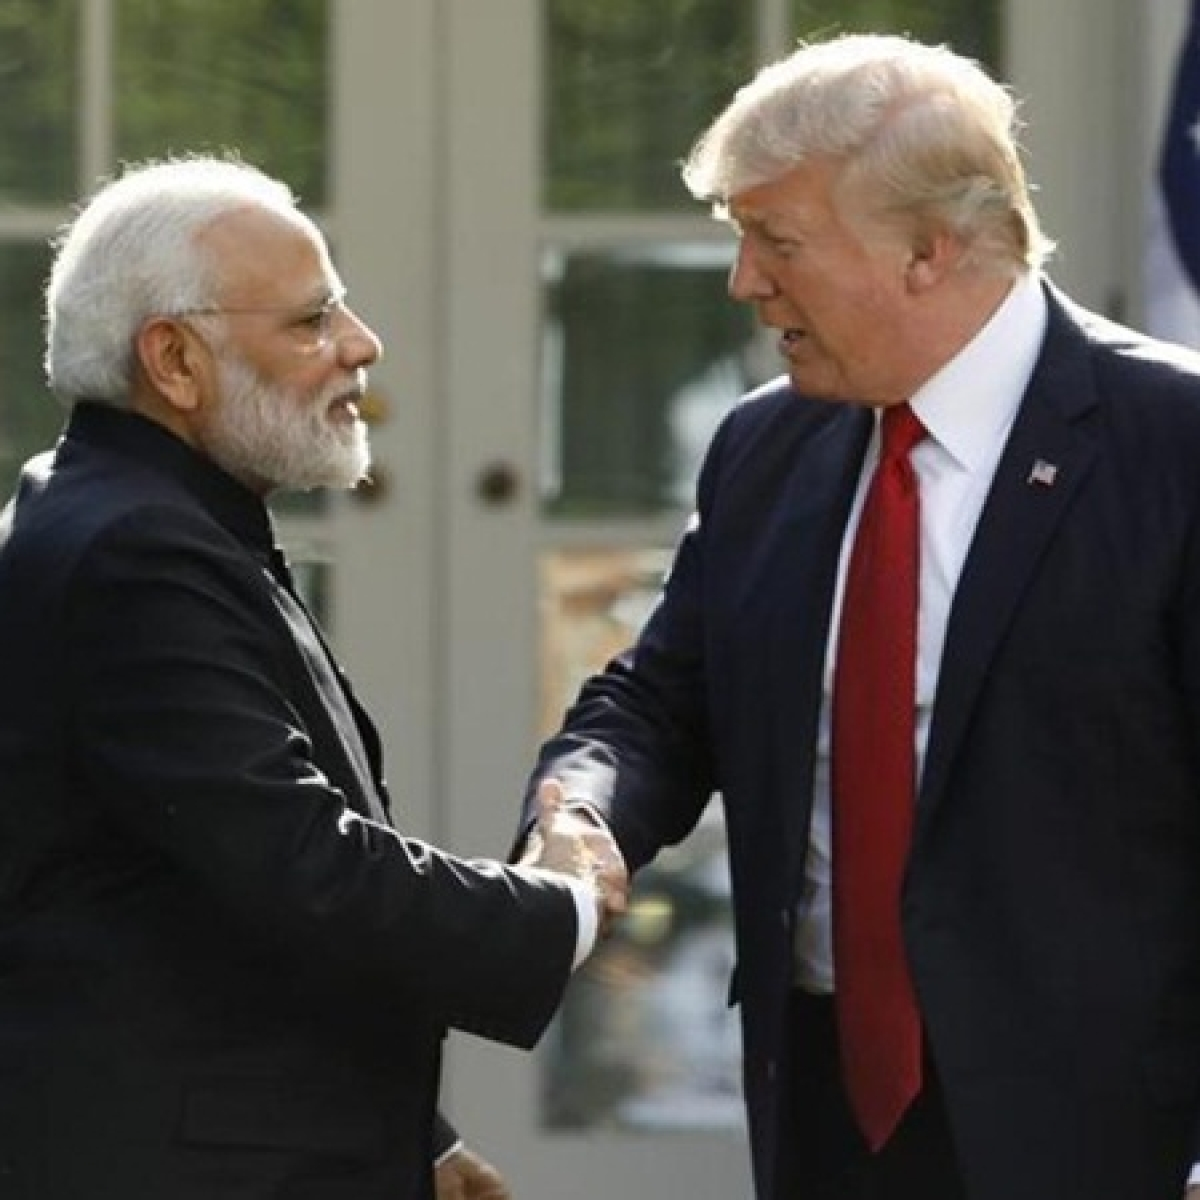 US wants India to embrace fair and reciprocal trade, lower barriers